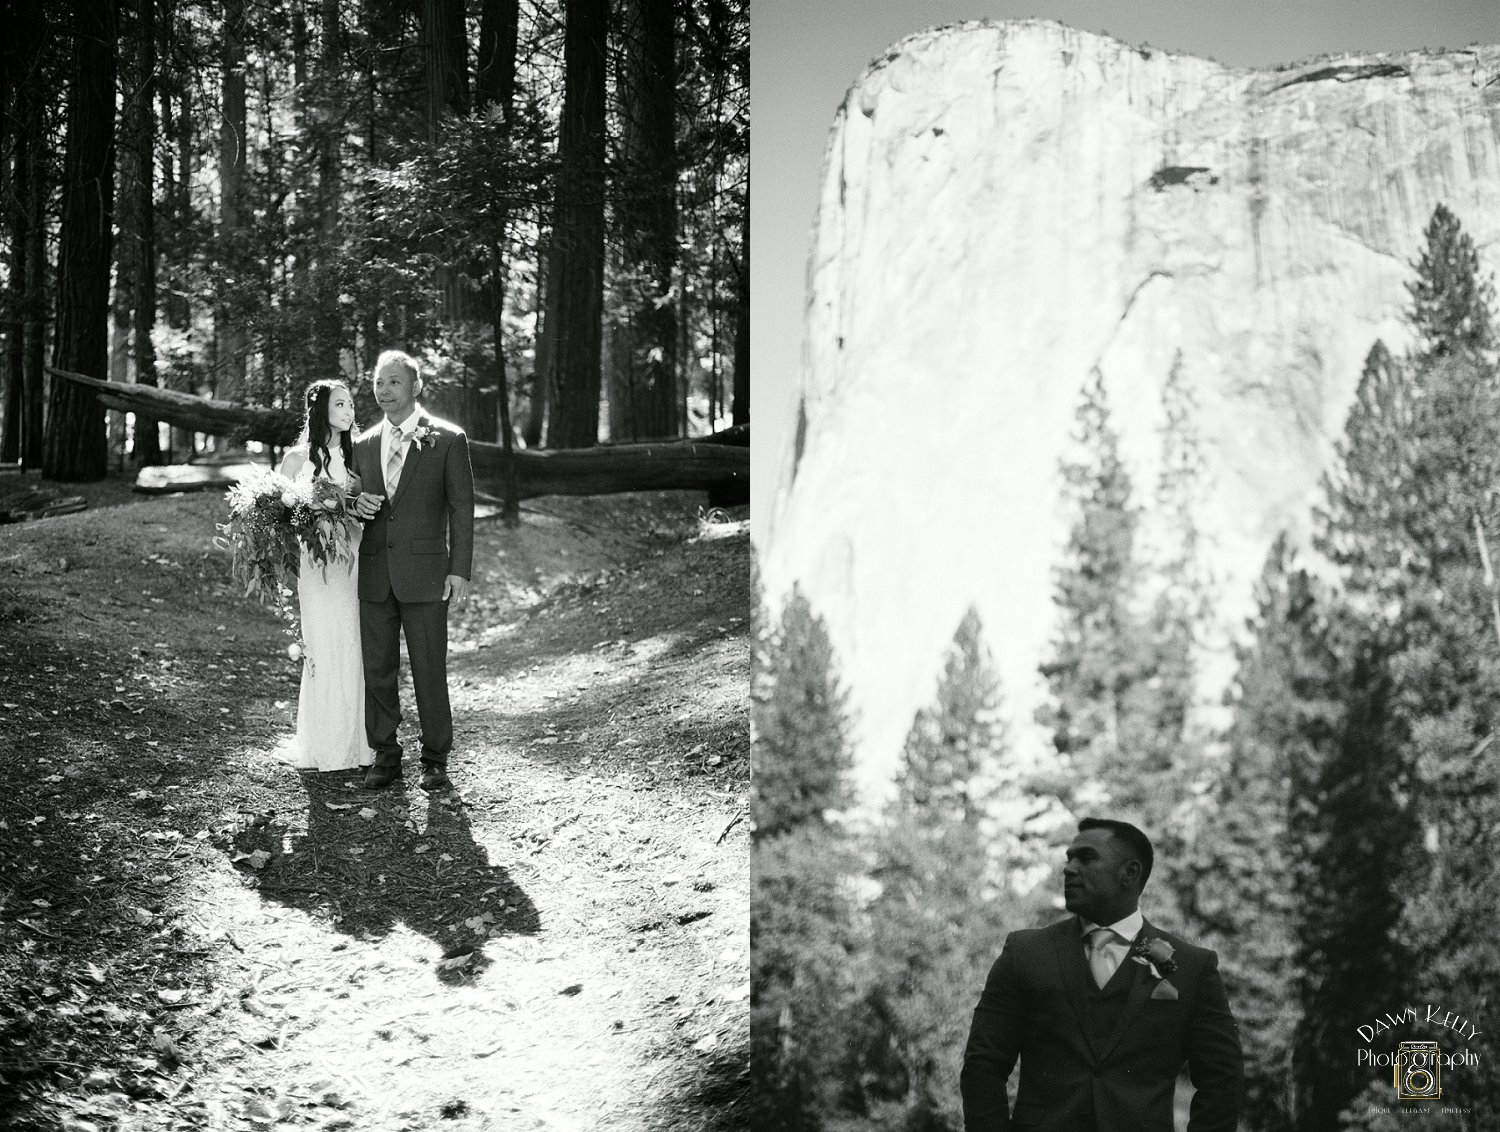 Cathedral Beach in Yosemite is an epic place to get married. With El Capitan as your view, you can't go wrong.